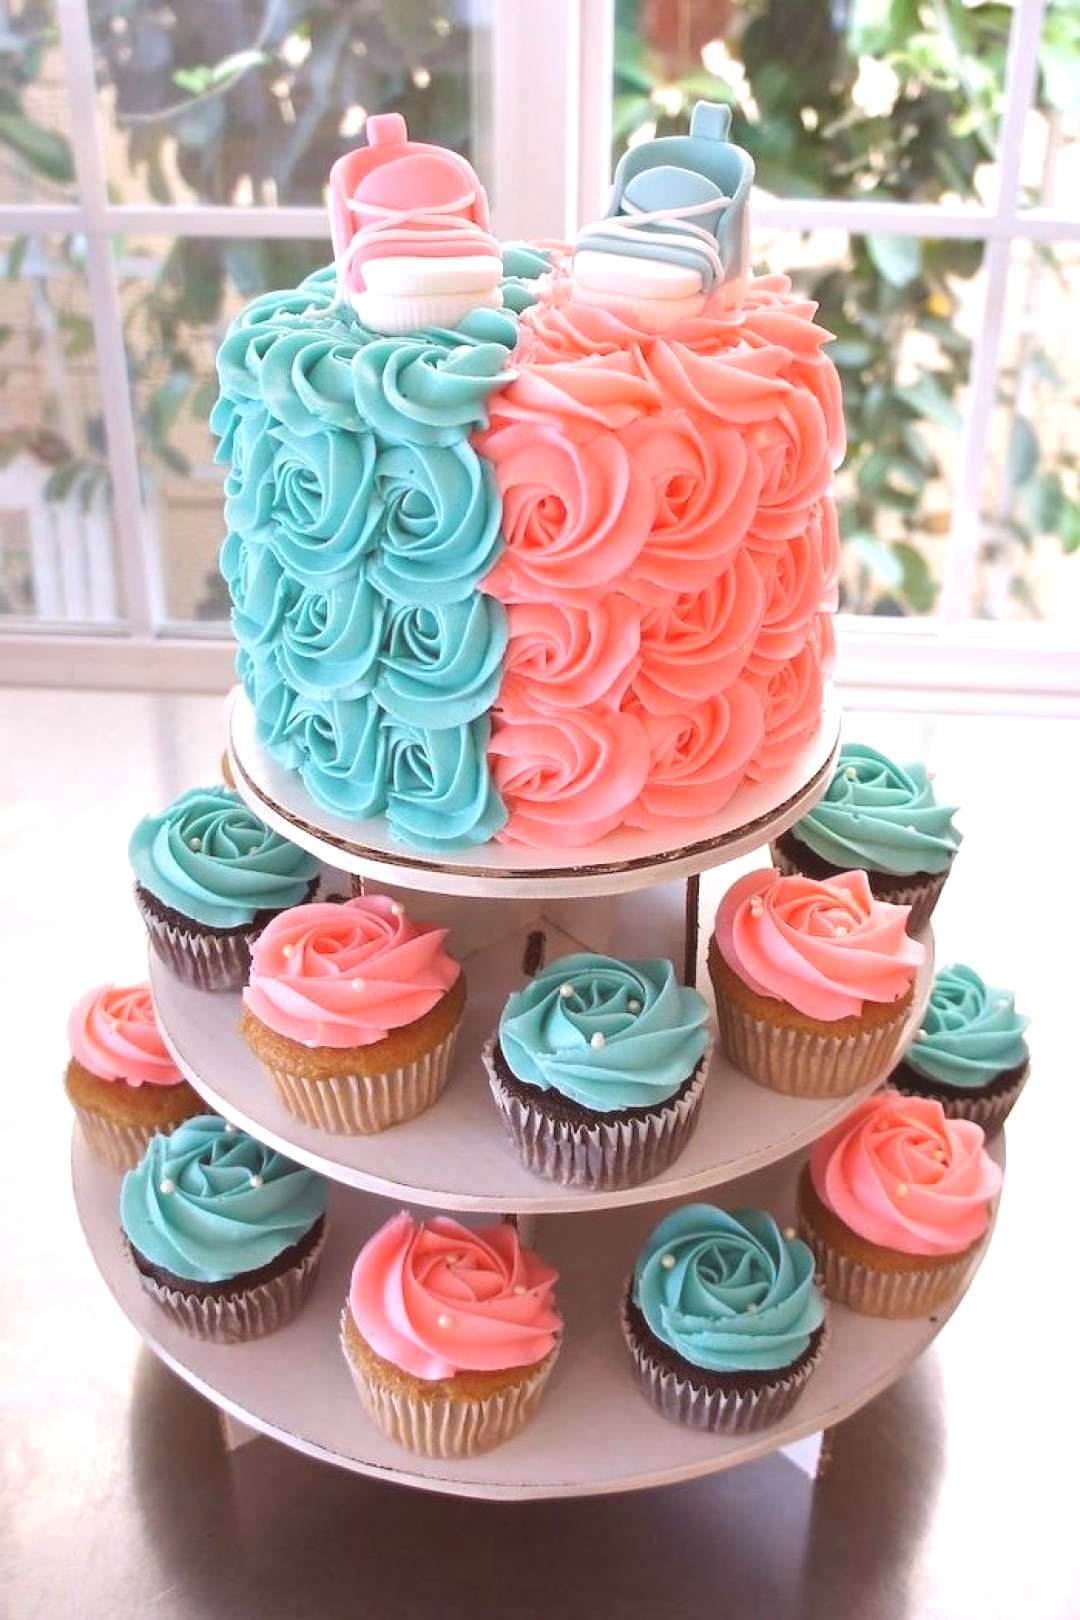 cake and cupcakes, with blue and pink frosting, gender reveal ideas, pink and blue sneakers, cake t